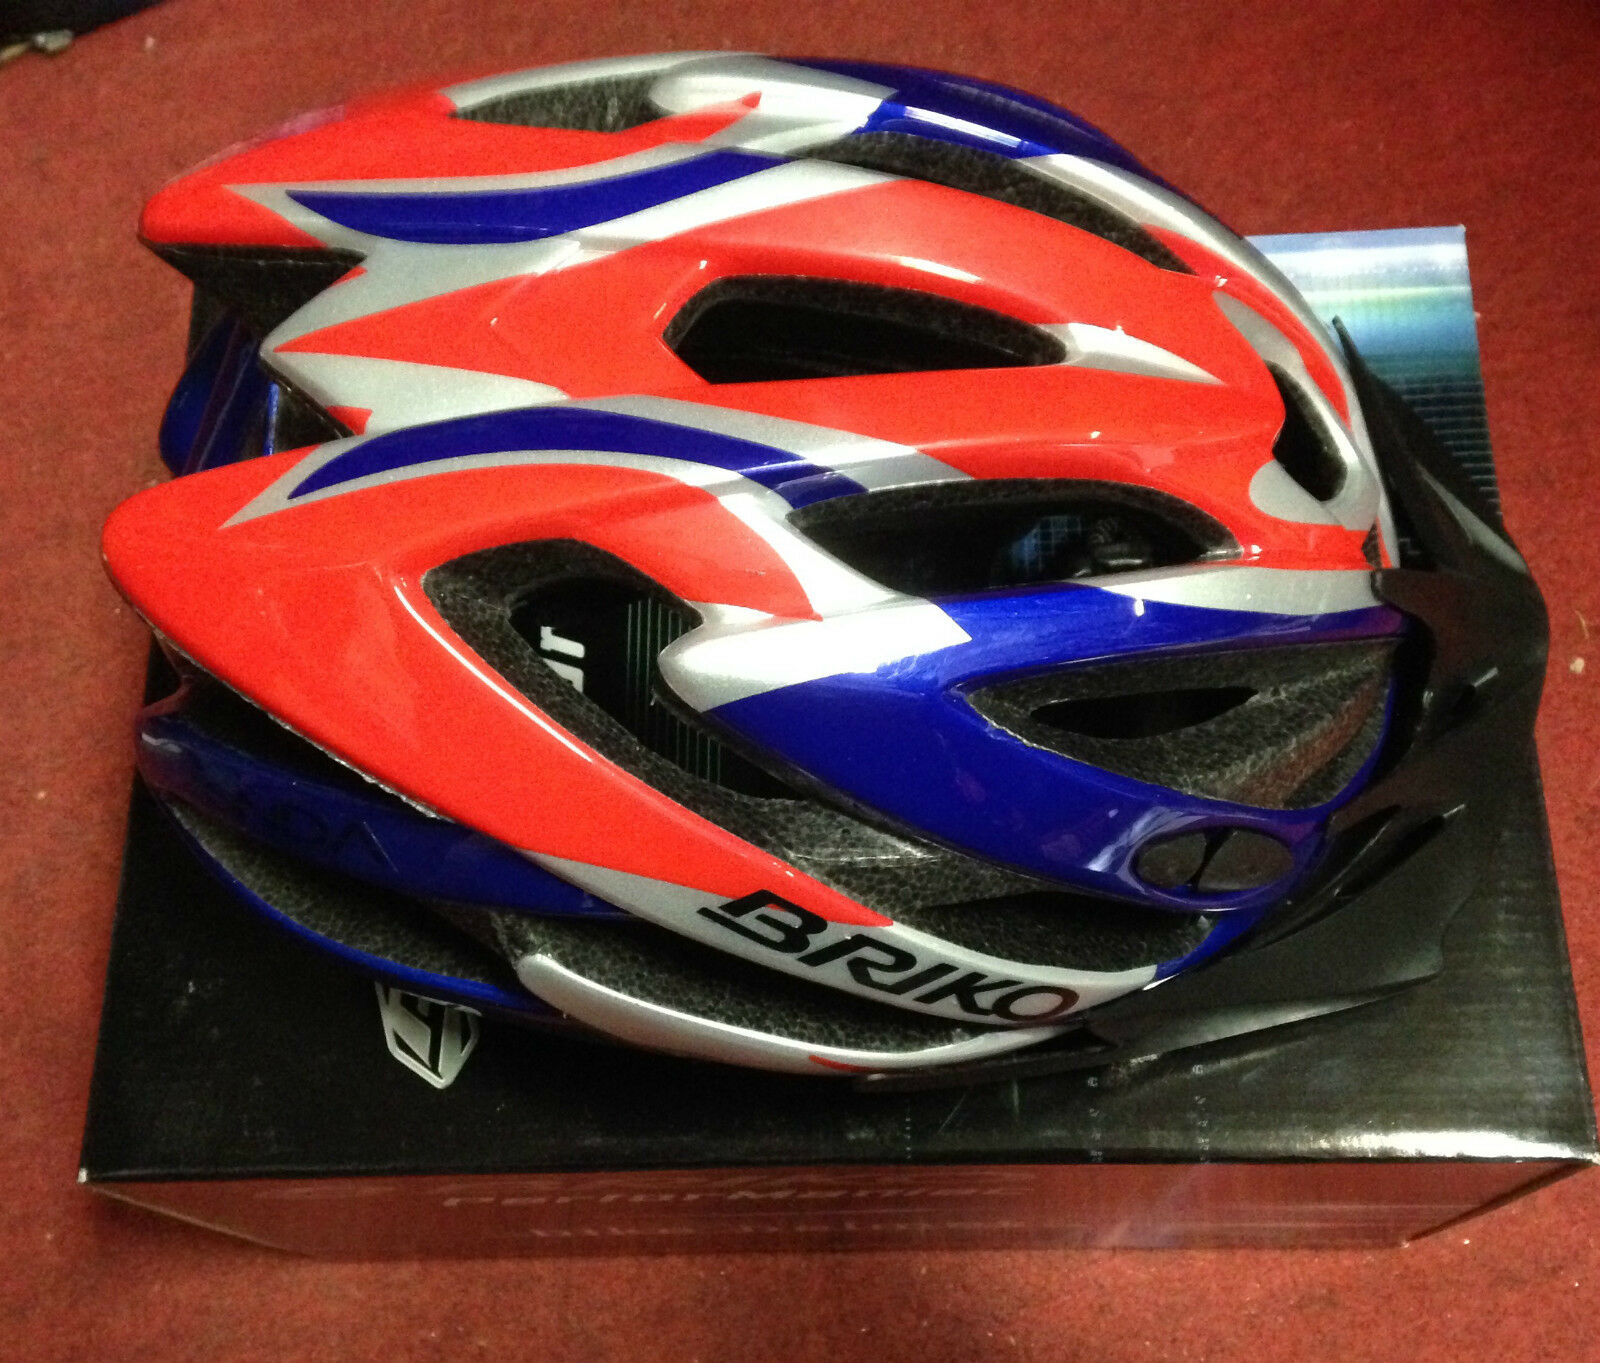 Casco bici corsamountain bike Briko New Zonda bike helmet M, L vari Coloreeei